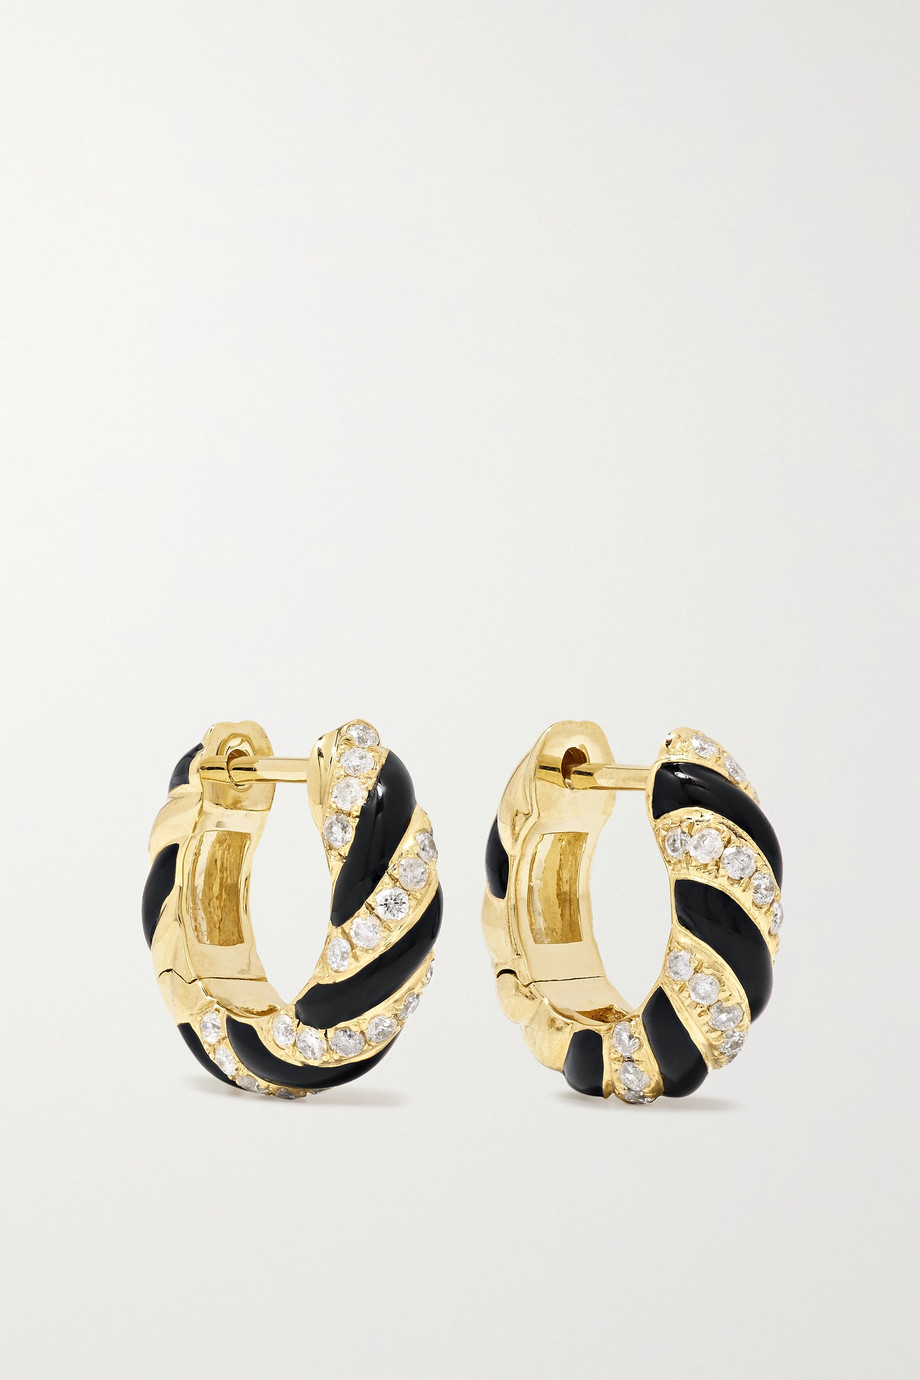 Yvonne Léon 9-karat gold, enamel and diamond earrings